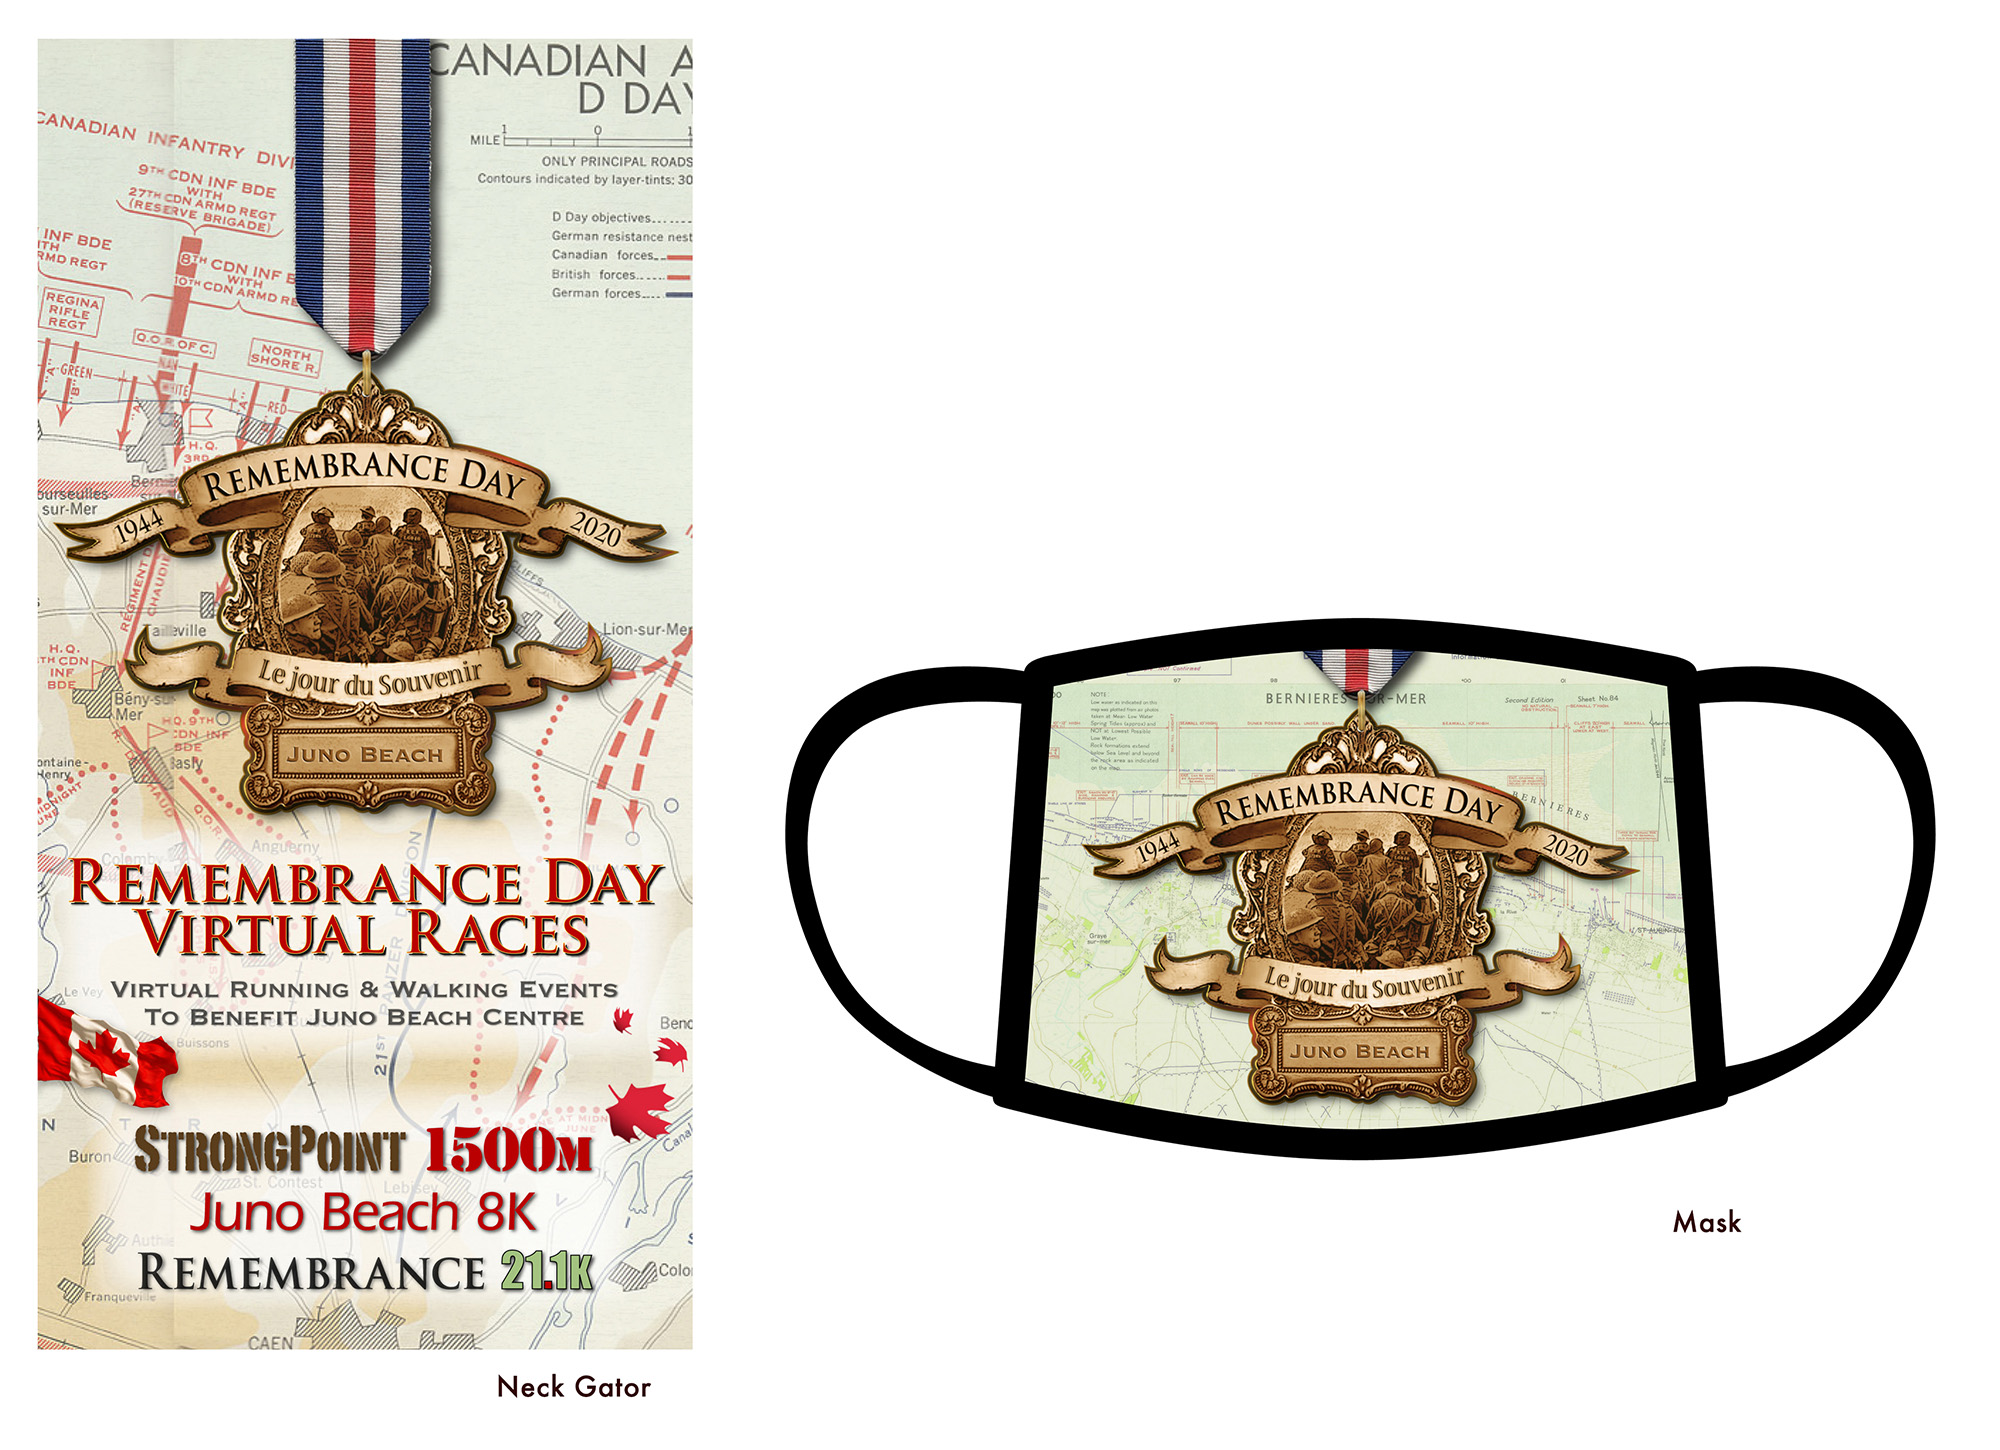 Remembrance Day neckgaitor mask